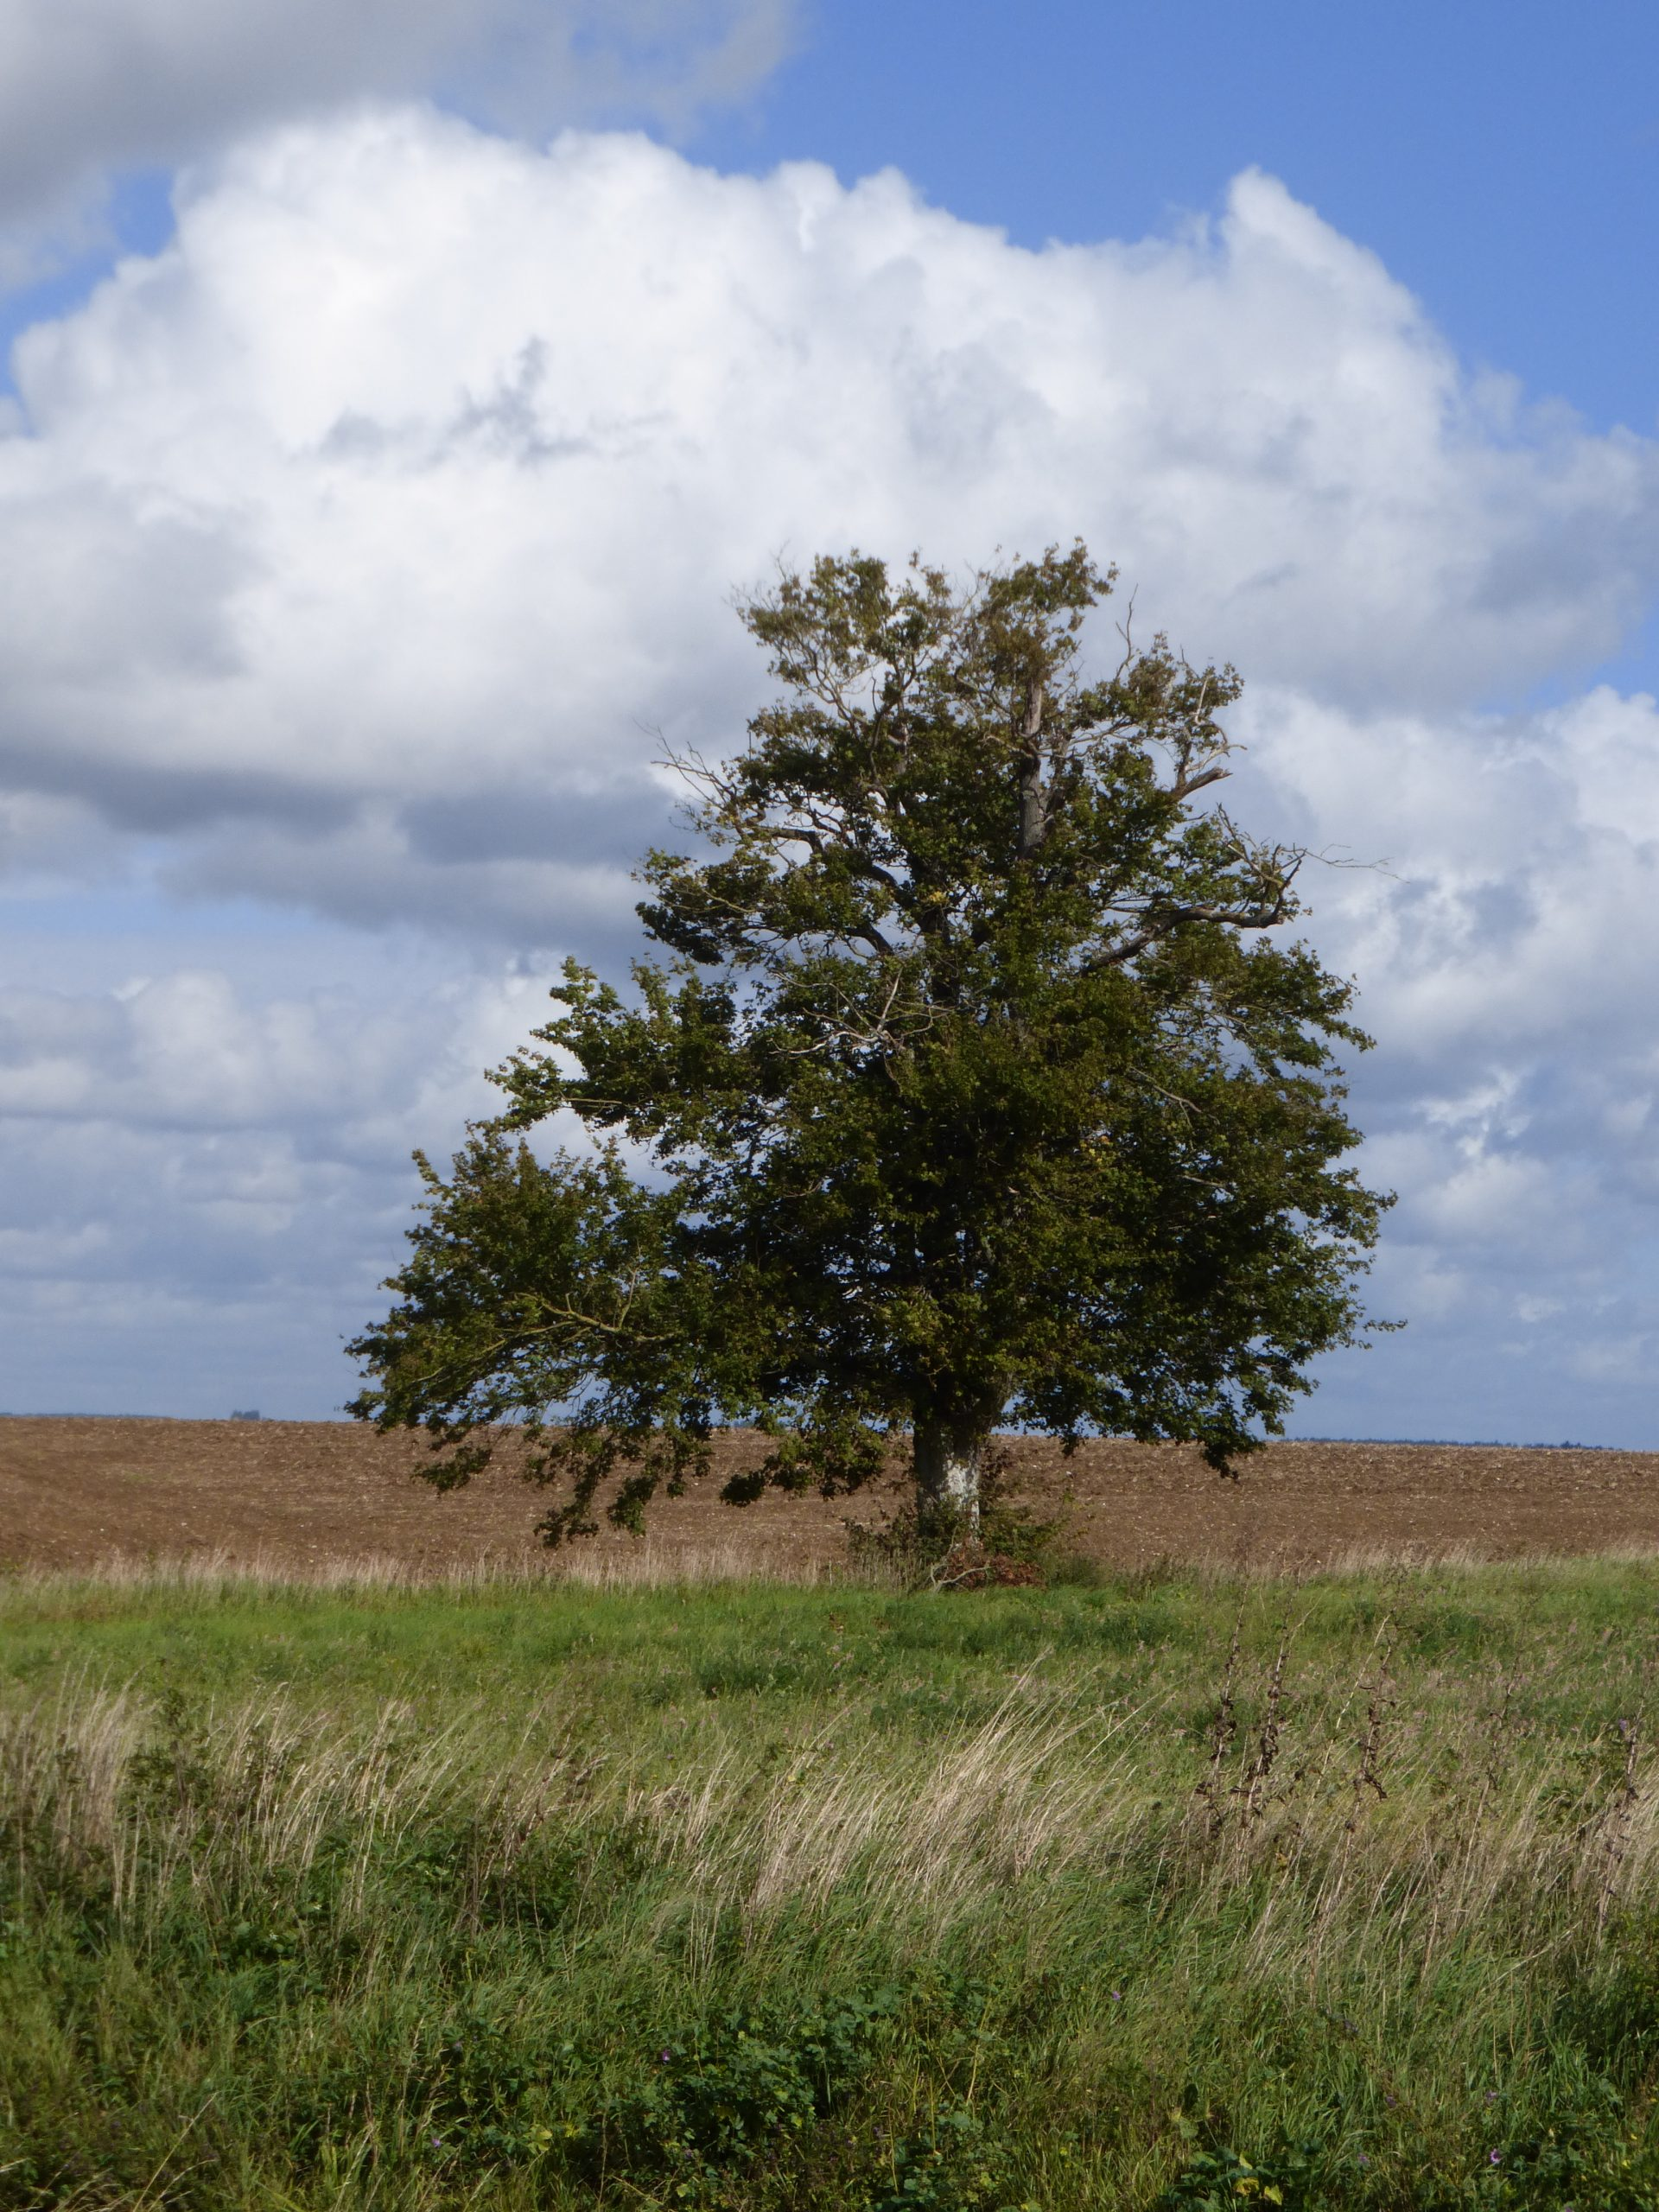 A single tree, in full leaf, stands out with ploughed field behind and rough pasture in front